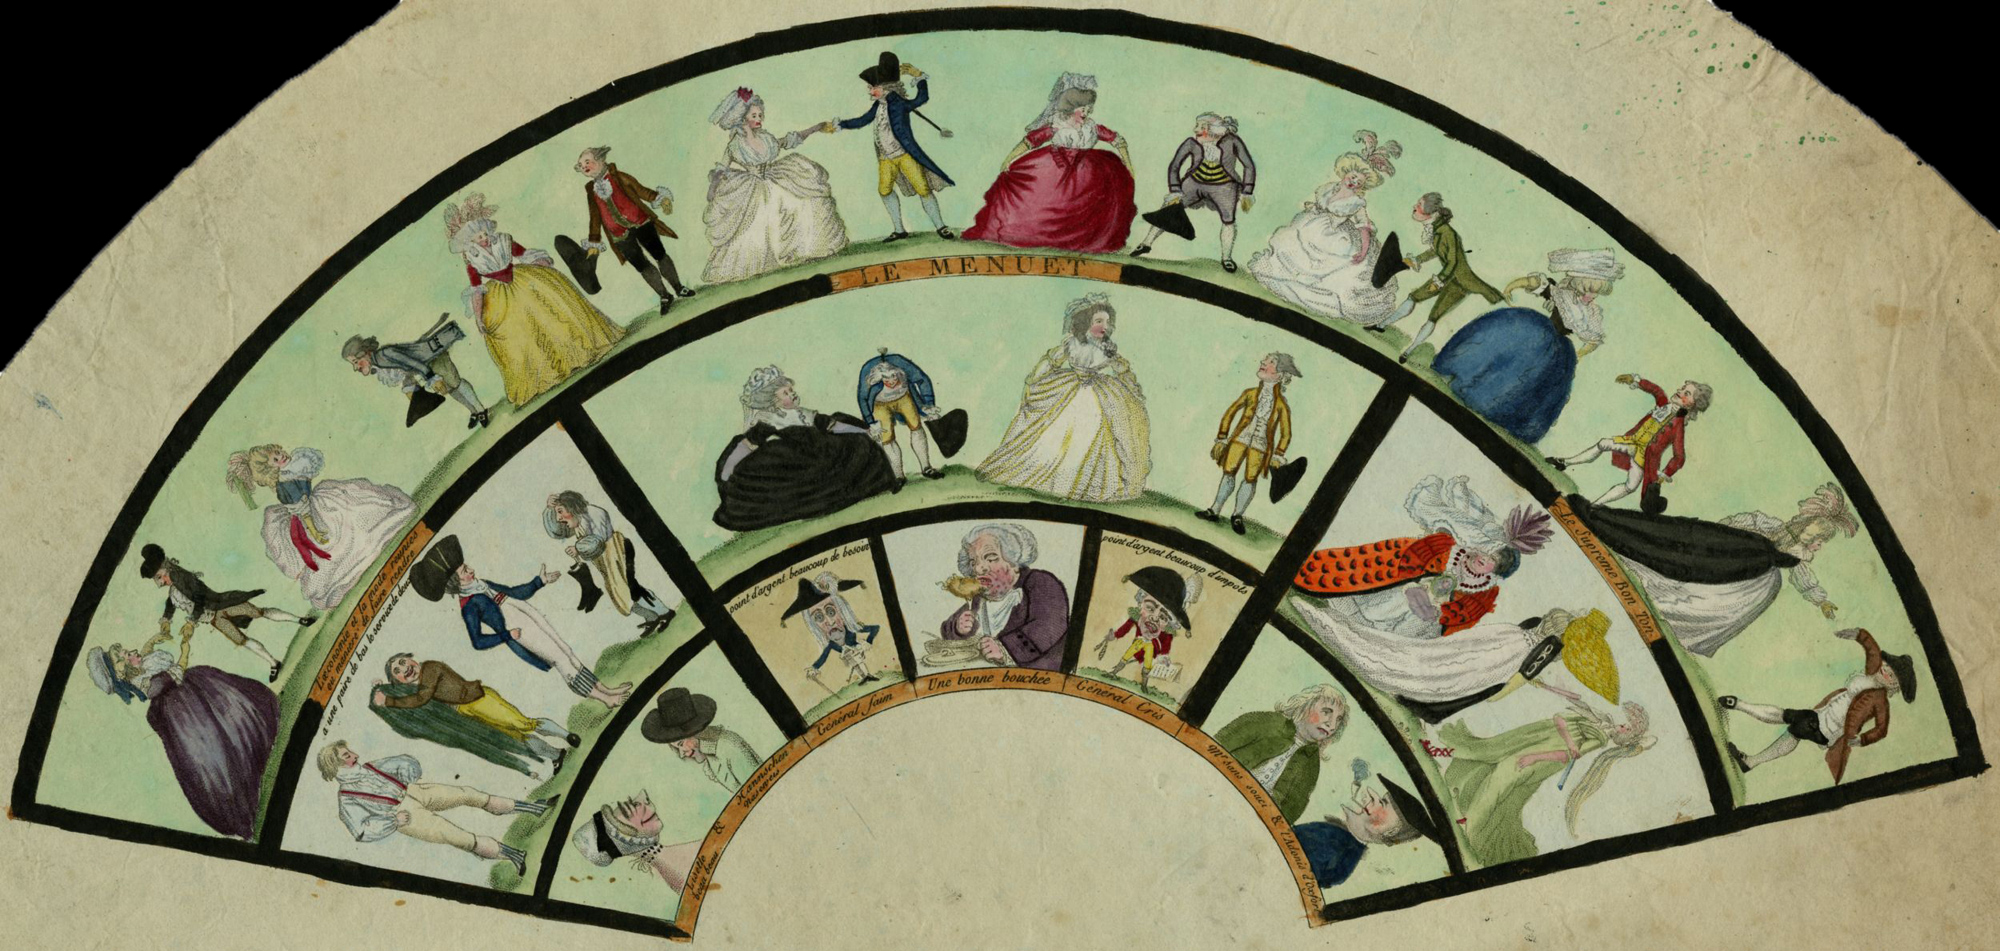 Le Meneut, unmounted leaf fan